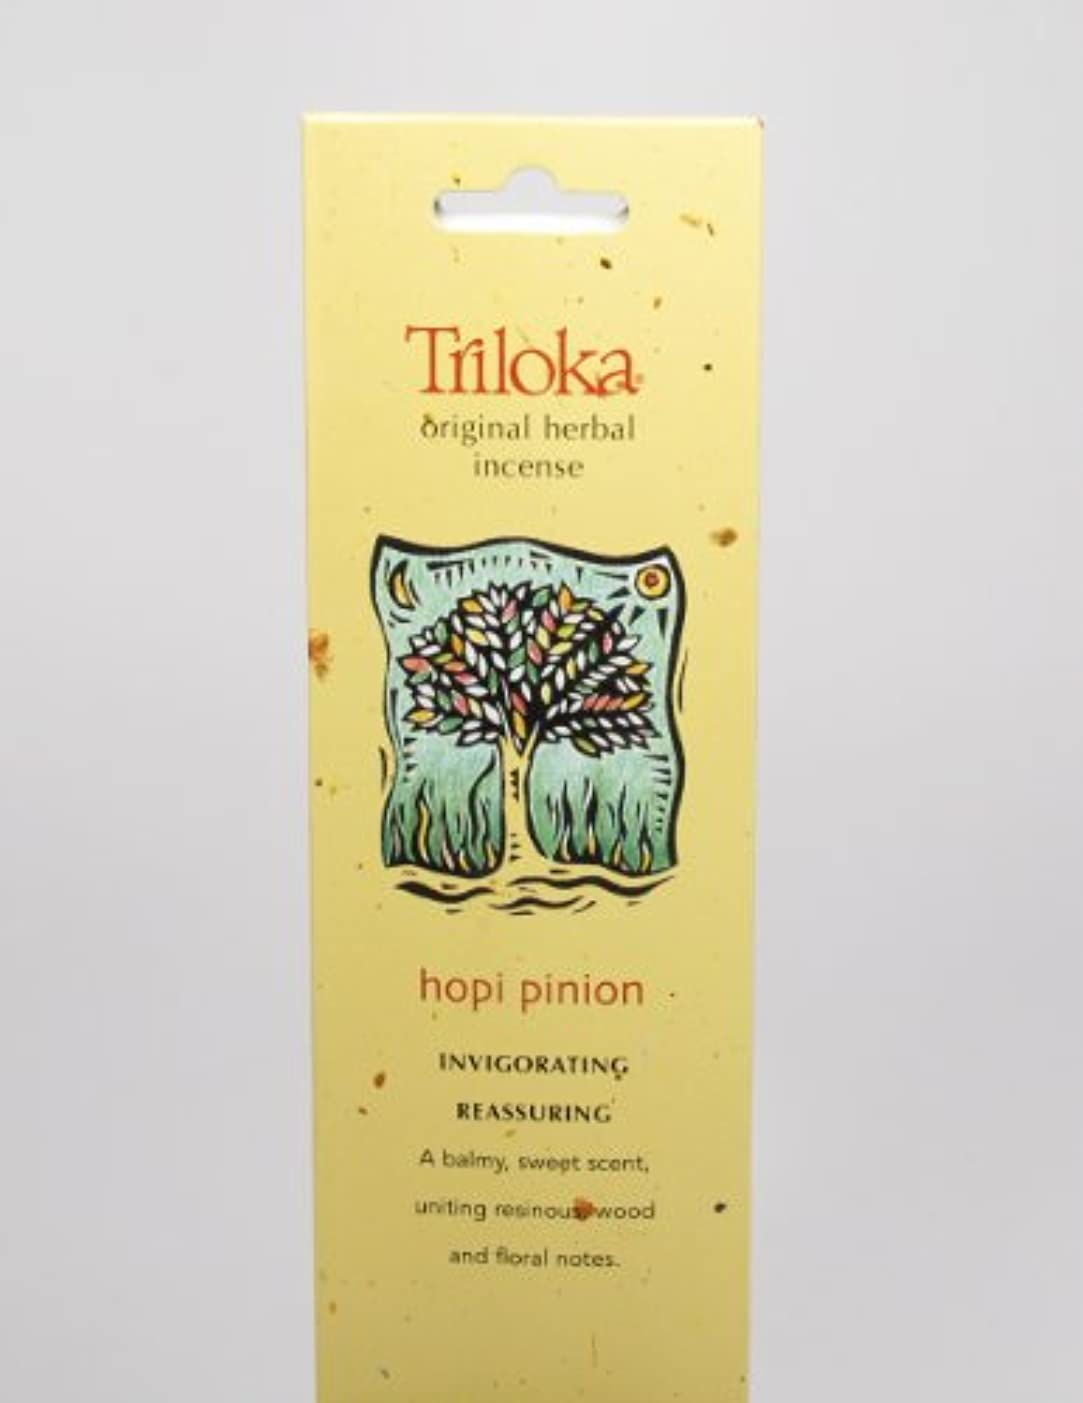 納税者エコー大使館Hopi Pinon – Triloka元Herbal Incense Sticks